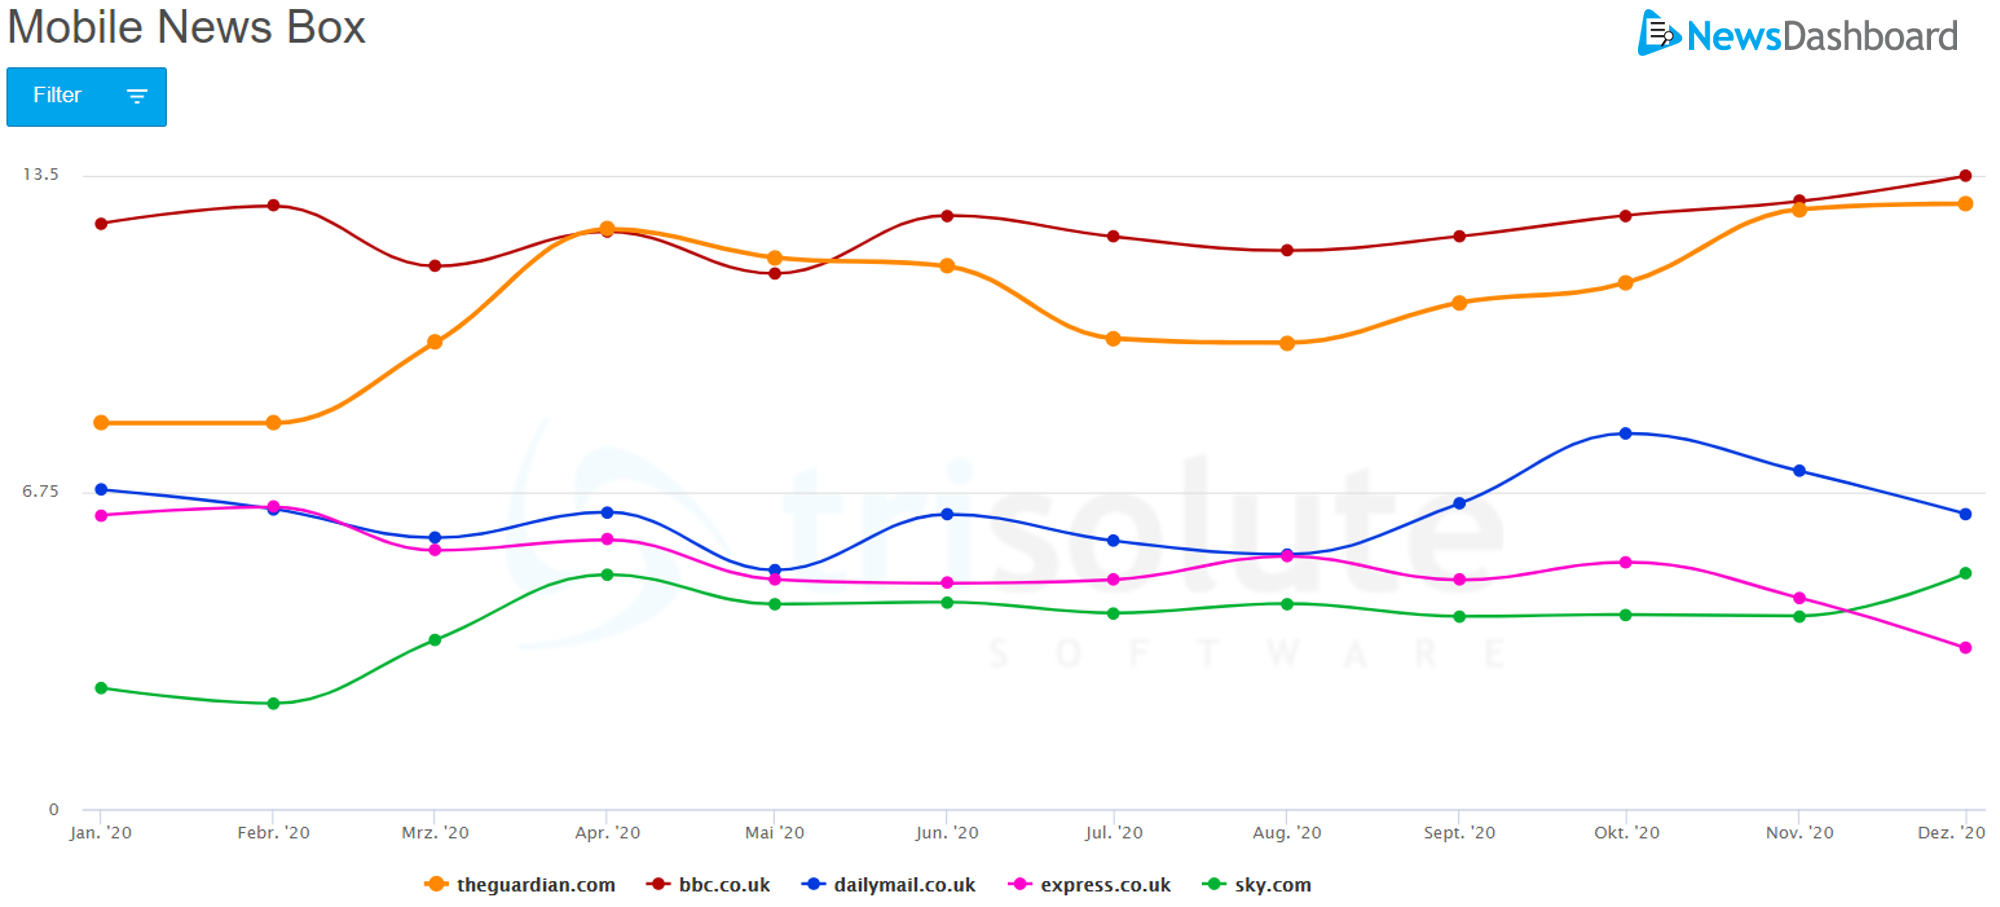 In the mobile news box, 2020 bbc.co.uk manages to hold on to the top spot.